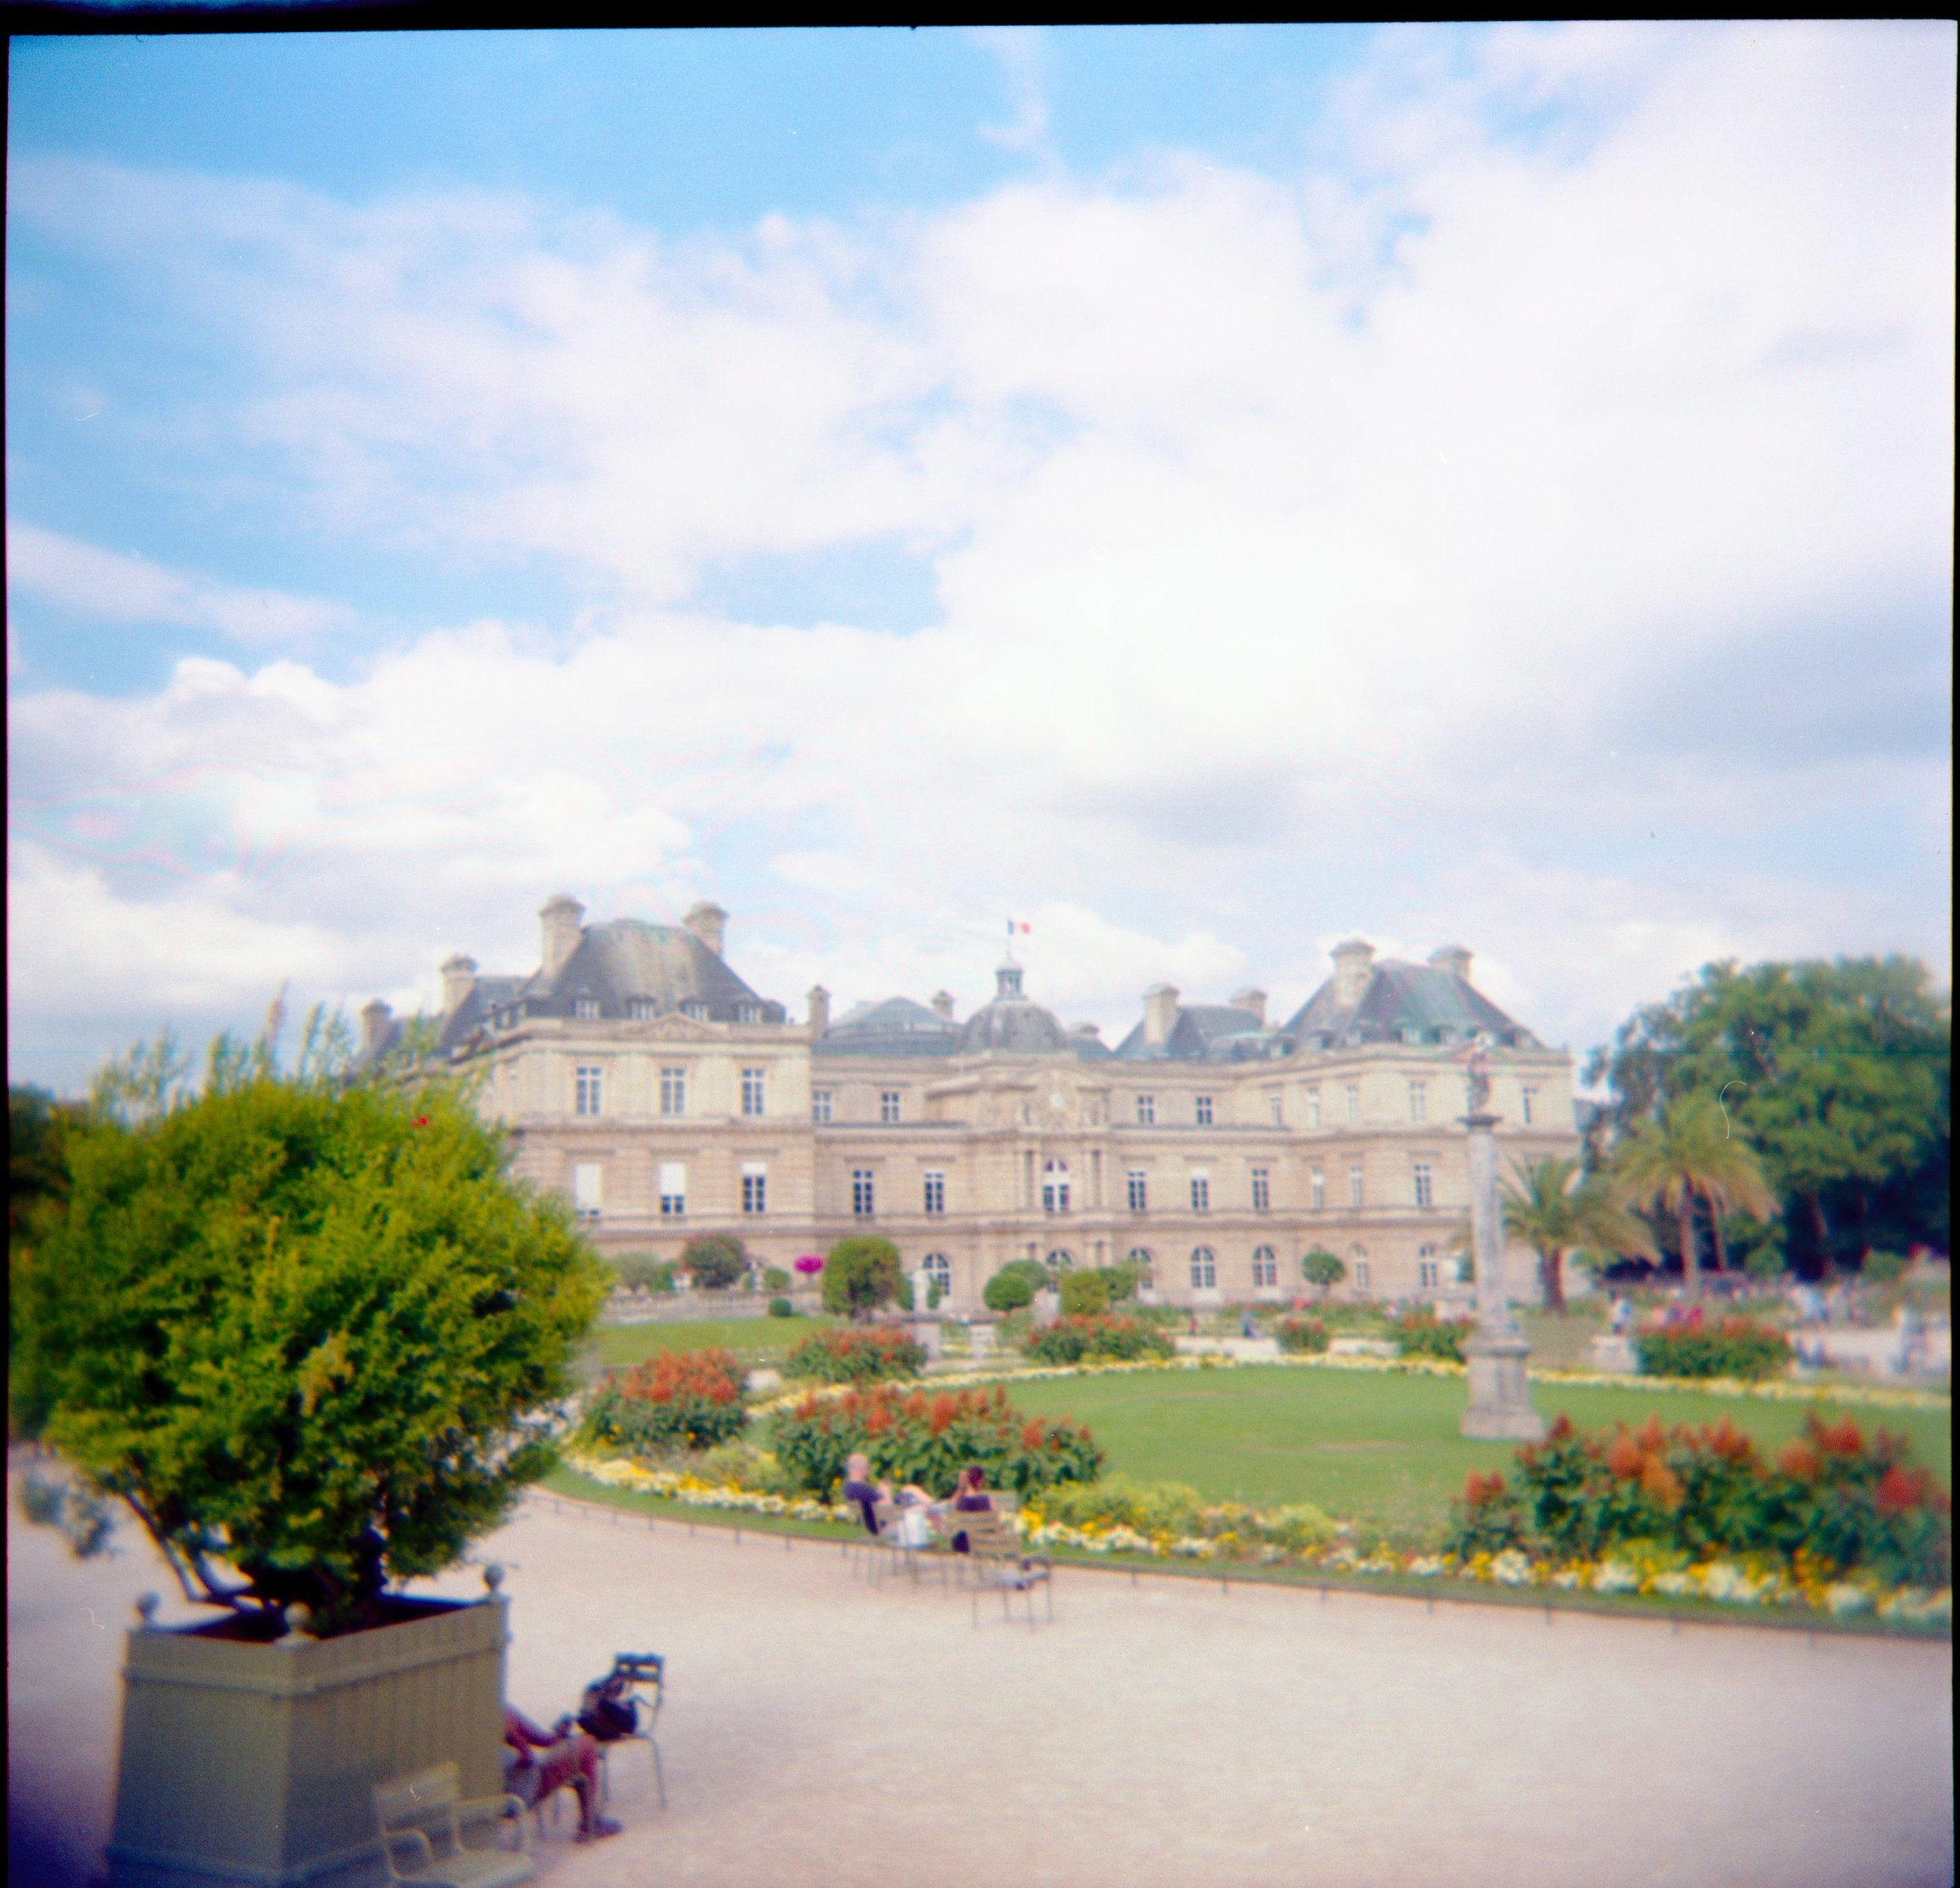 120mm film photo of Luxembourg Gardens